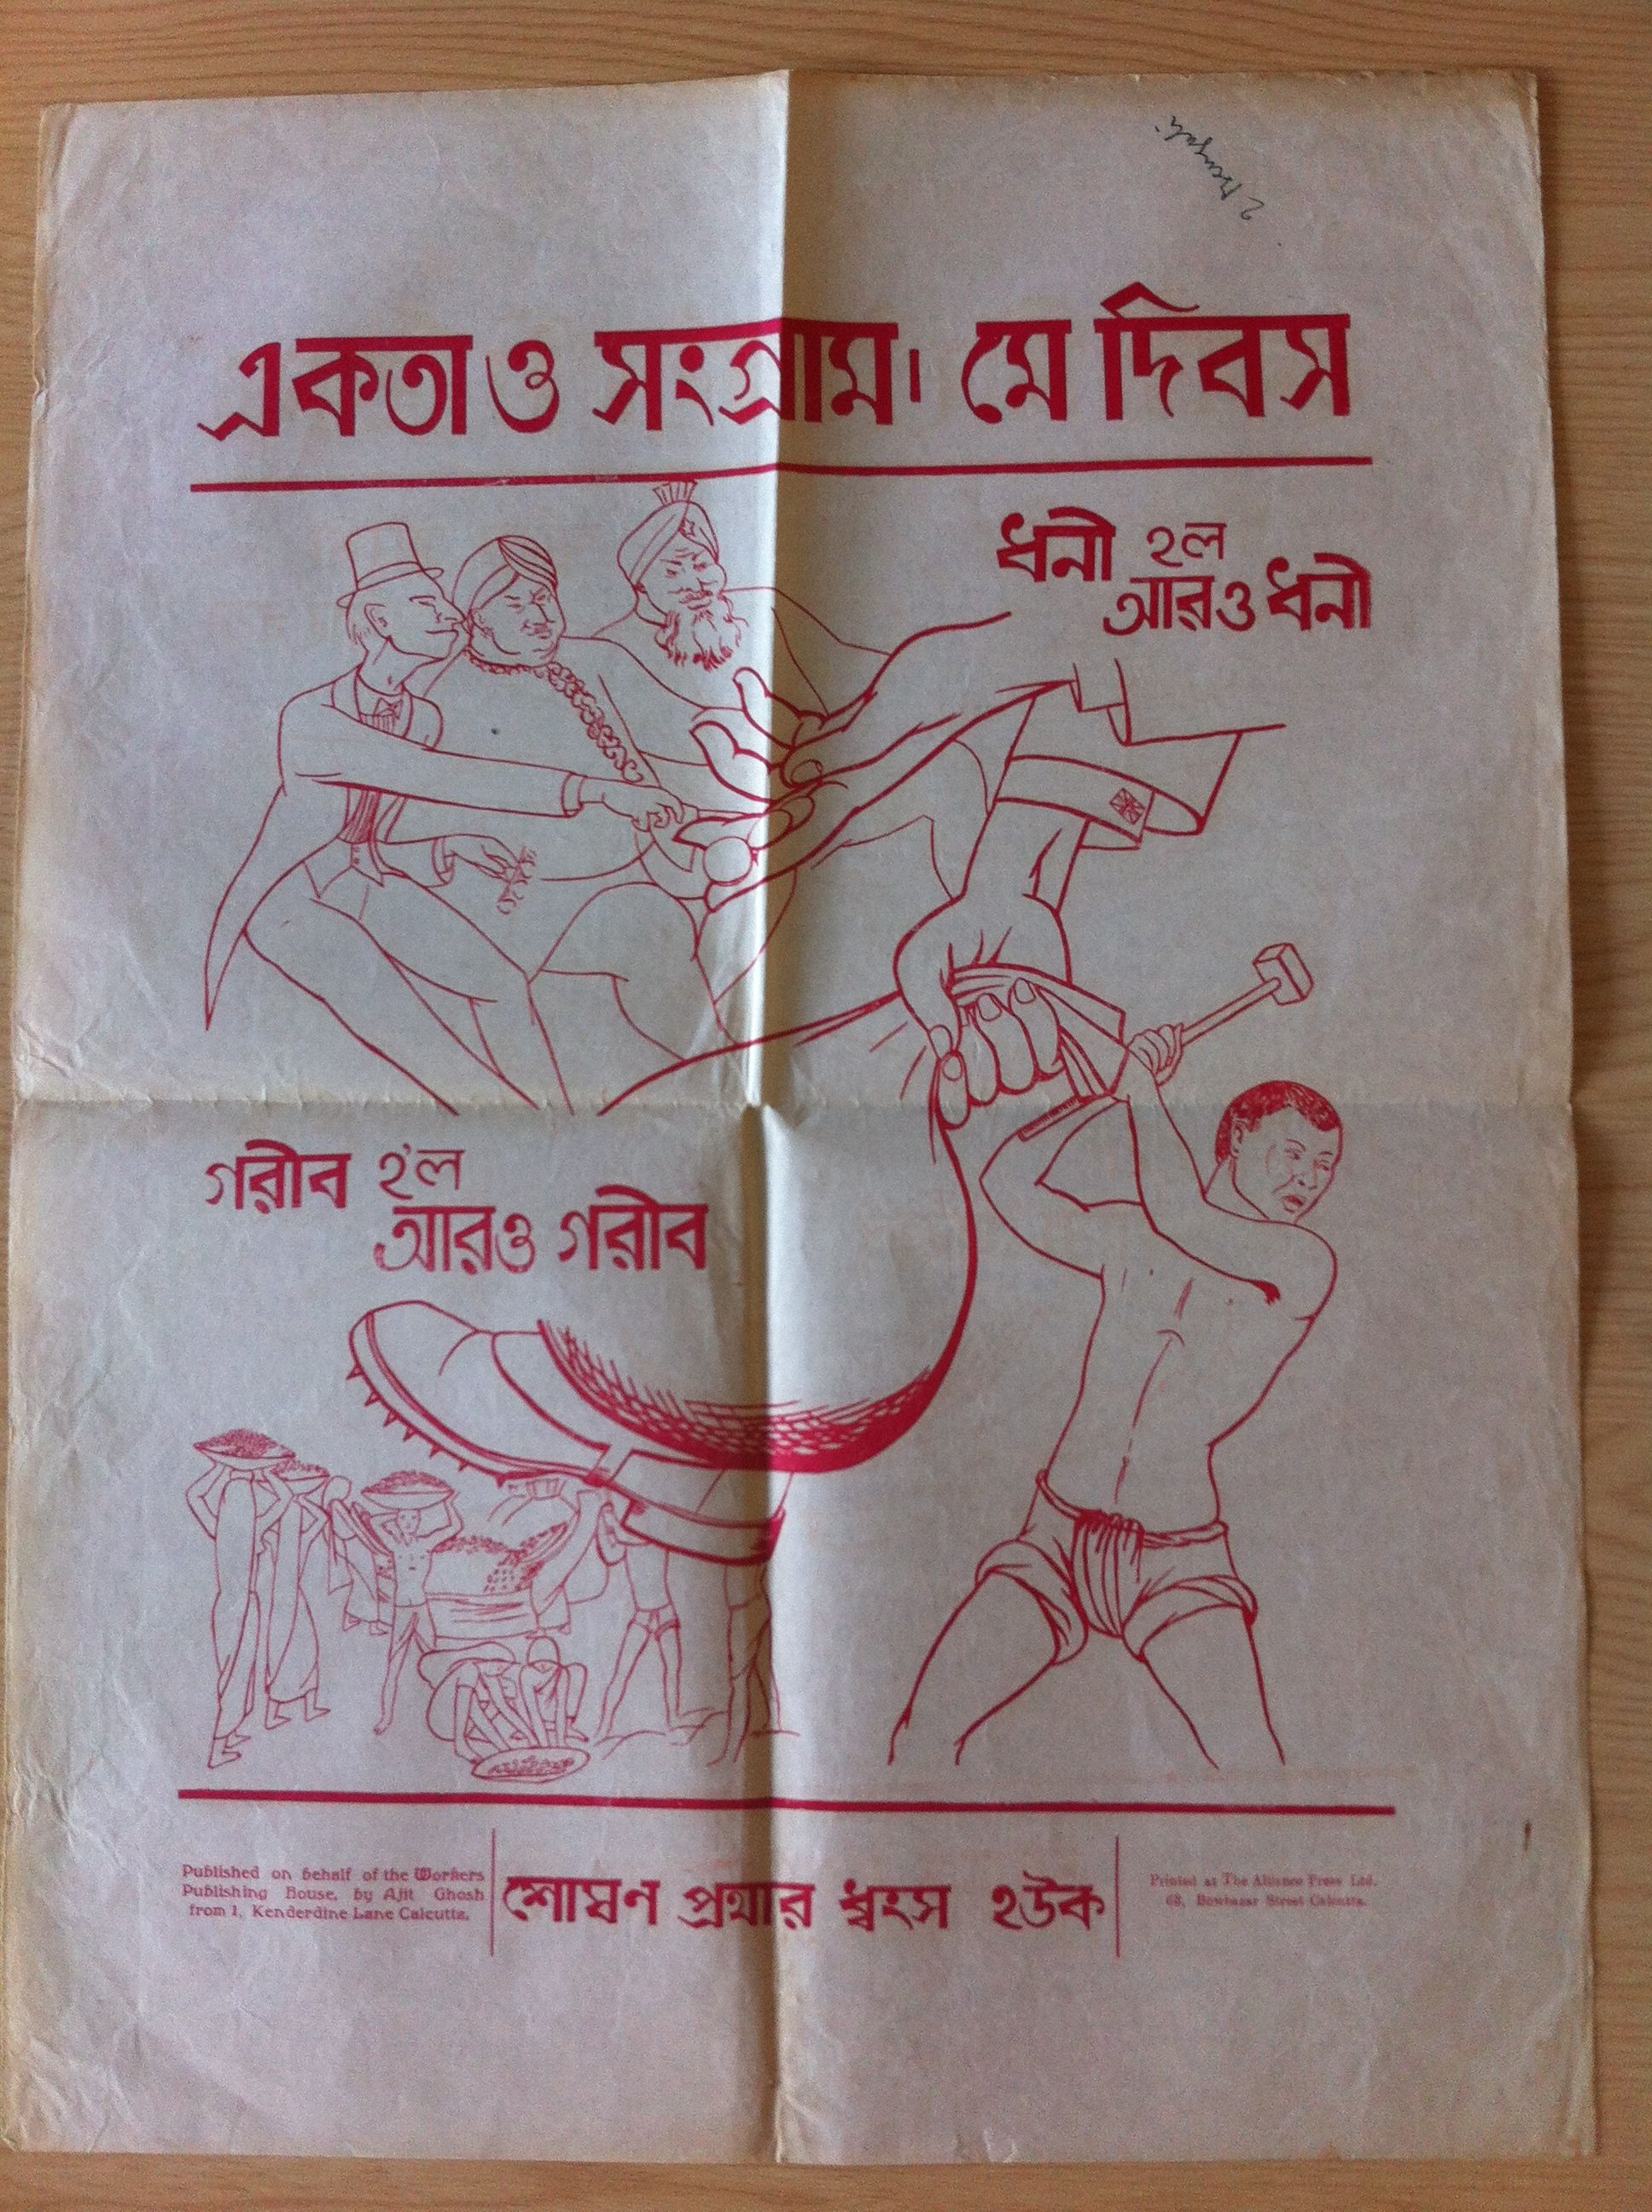 Poster from 1940s Bengal